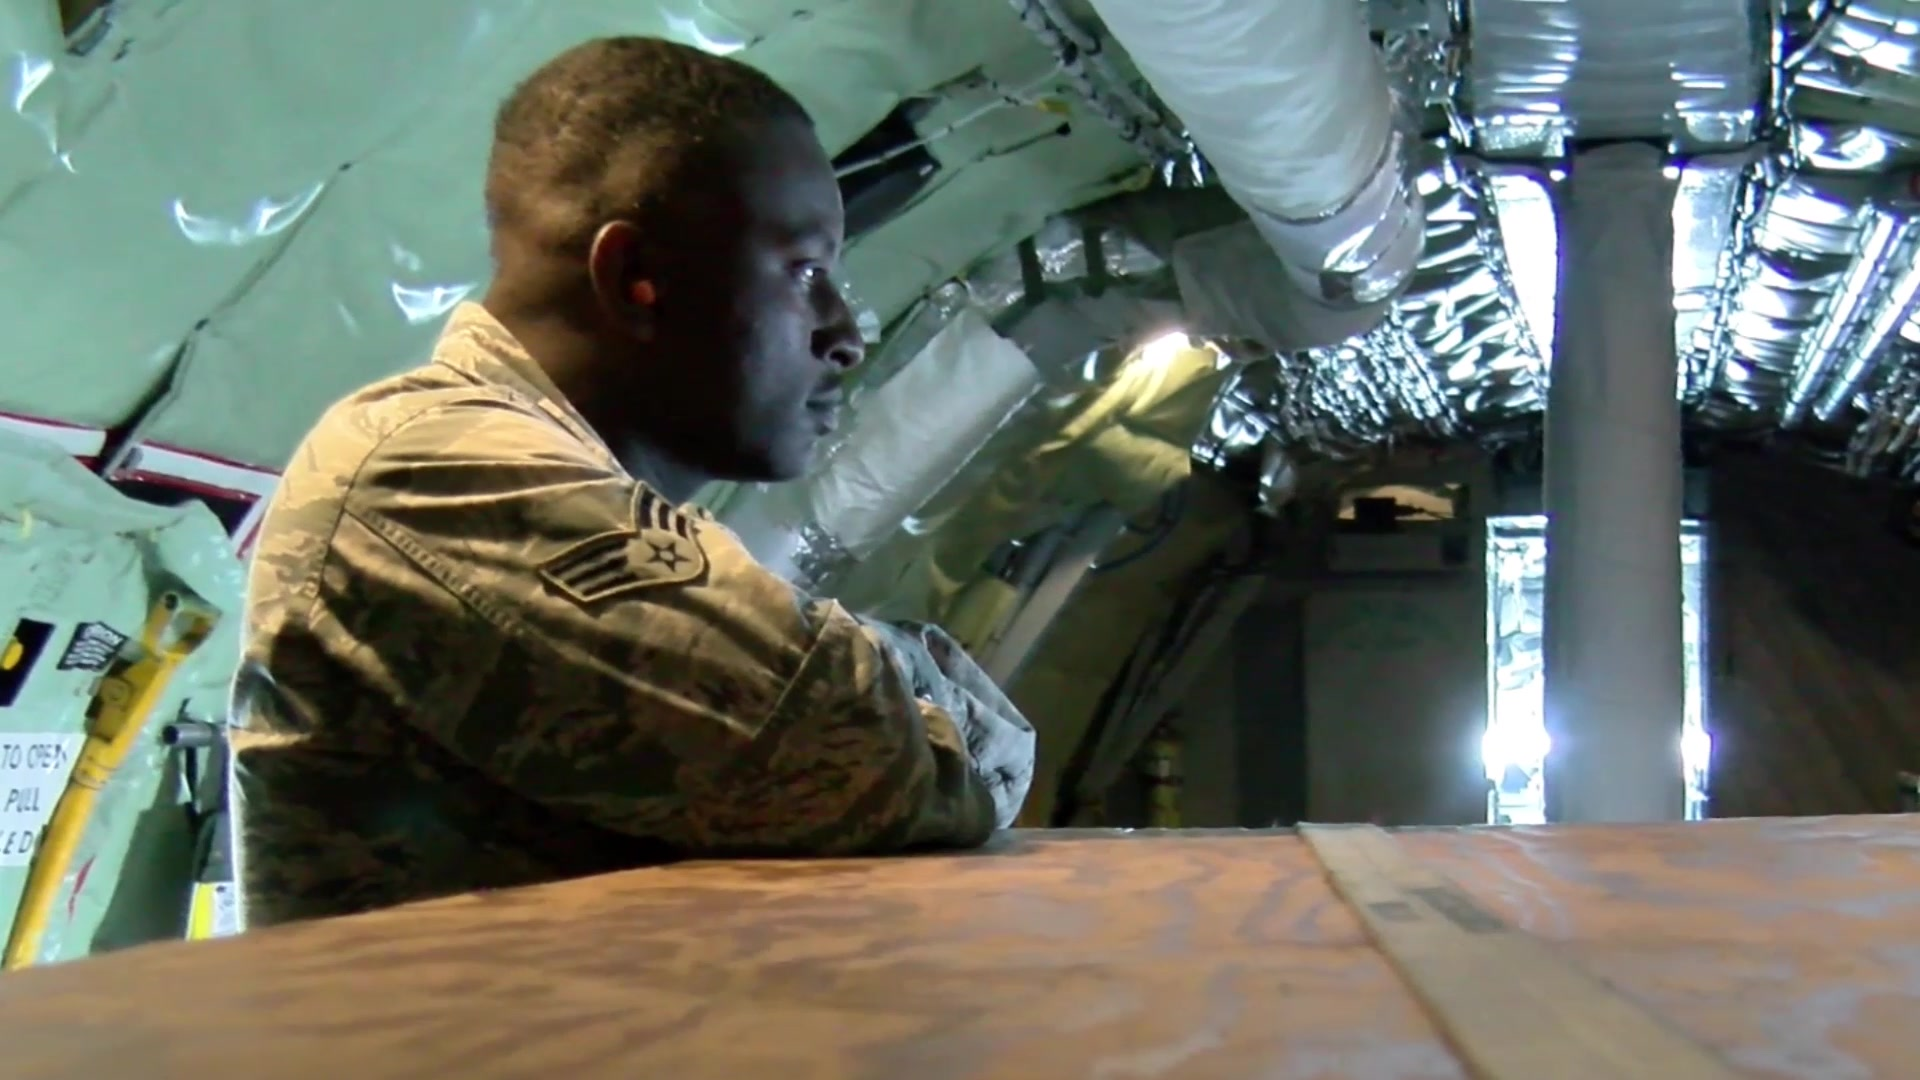 During this Thanksgiving, airmen and civilian alike have an opportunity to donate their time and effort from assisting in shelters to helping at food pantries. However, Senior Airman Reginald Green from the 916 Aerospace Medicine Squadron, a civilian barber, has a heartwarming story of perseverance and giving back throughout the homeless community.    (U.S. Air Force Video by Tech. Sgt. Michael McGhee)